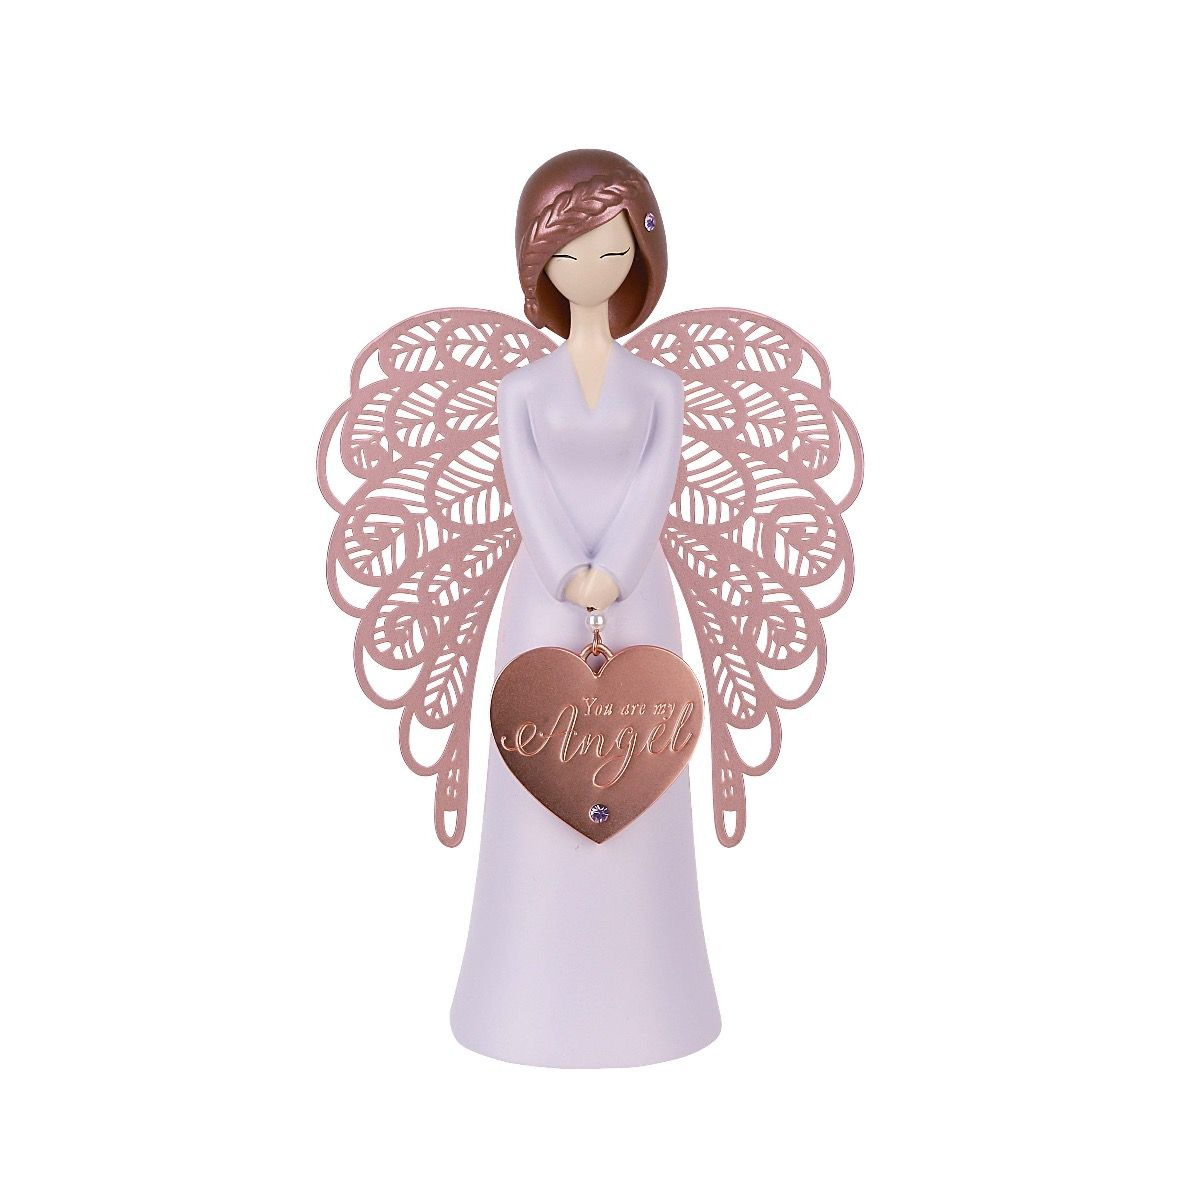 'My Angel' Figurine